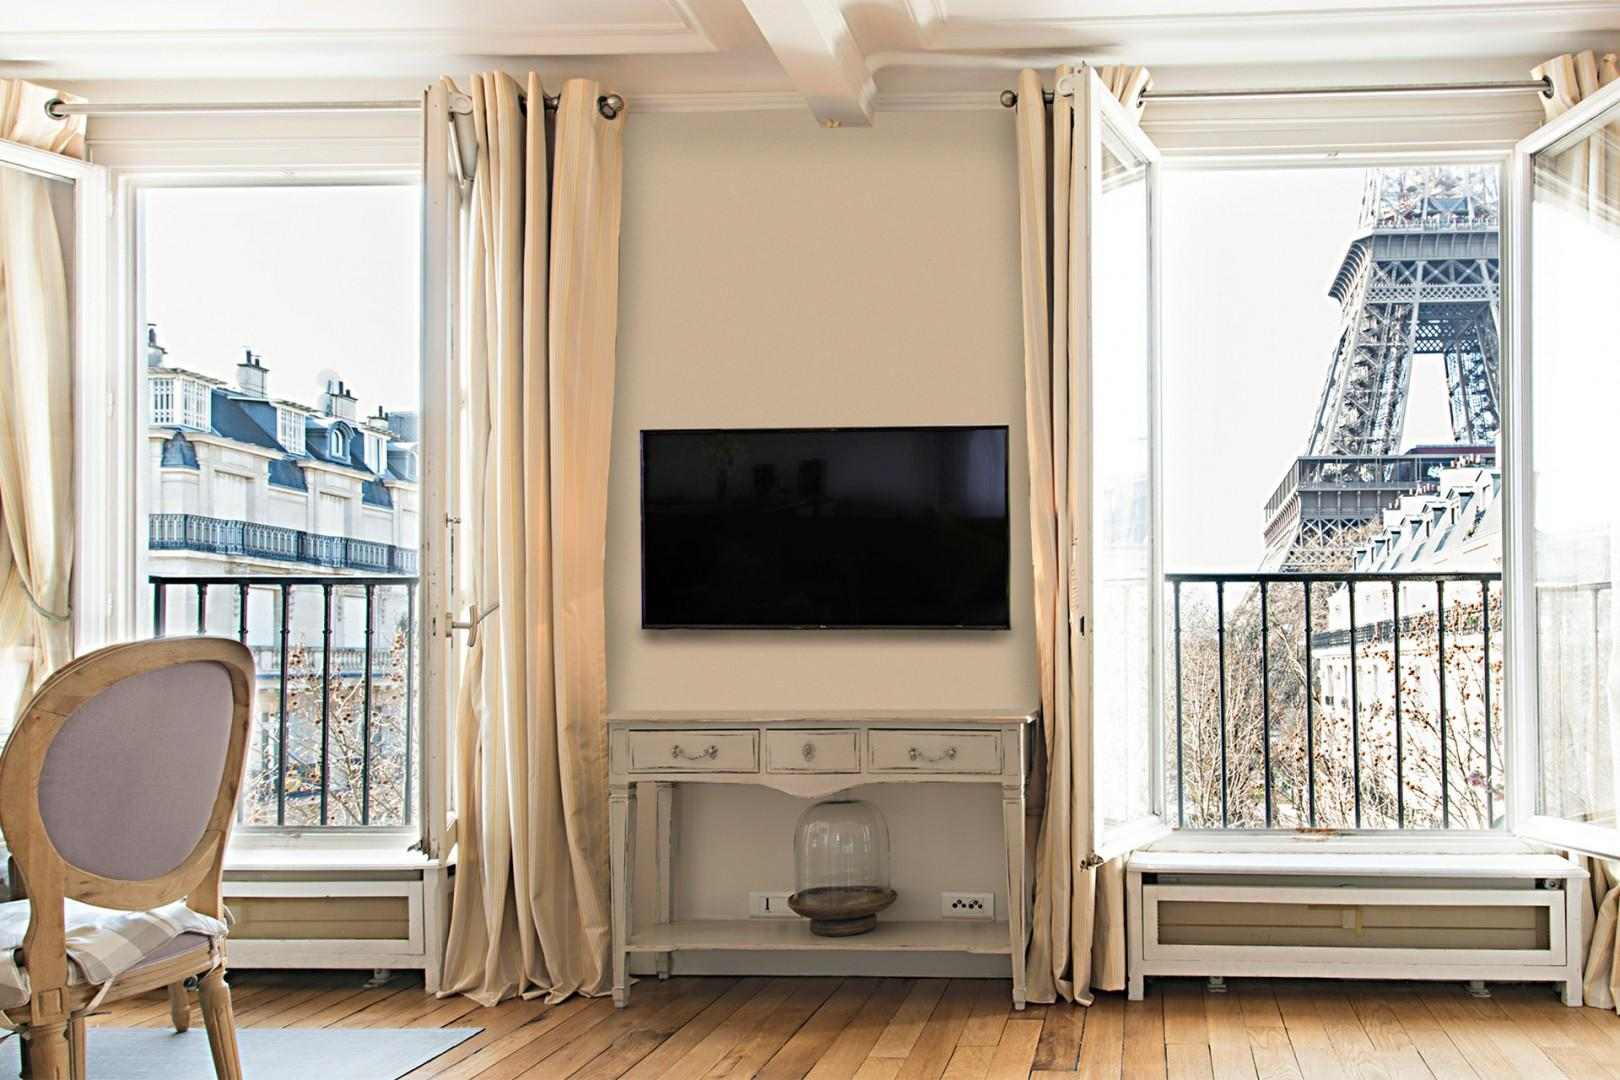 Large windows offer one-of-a-kind Eiffel Tower views.